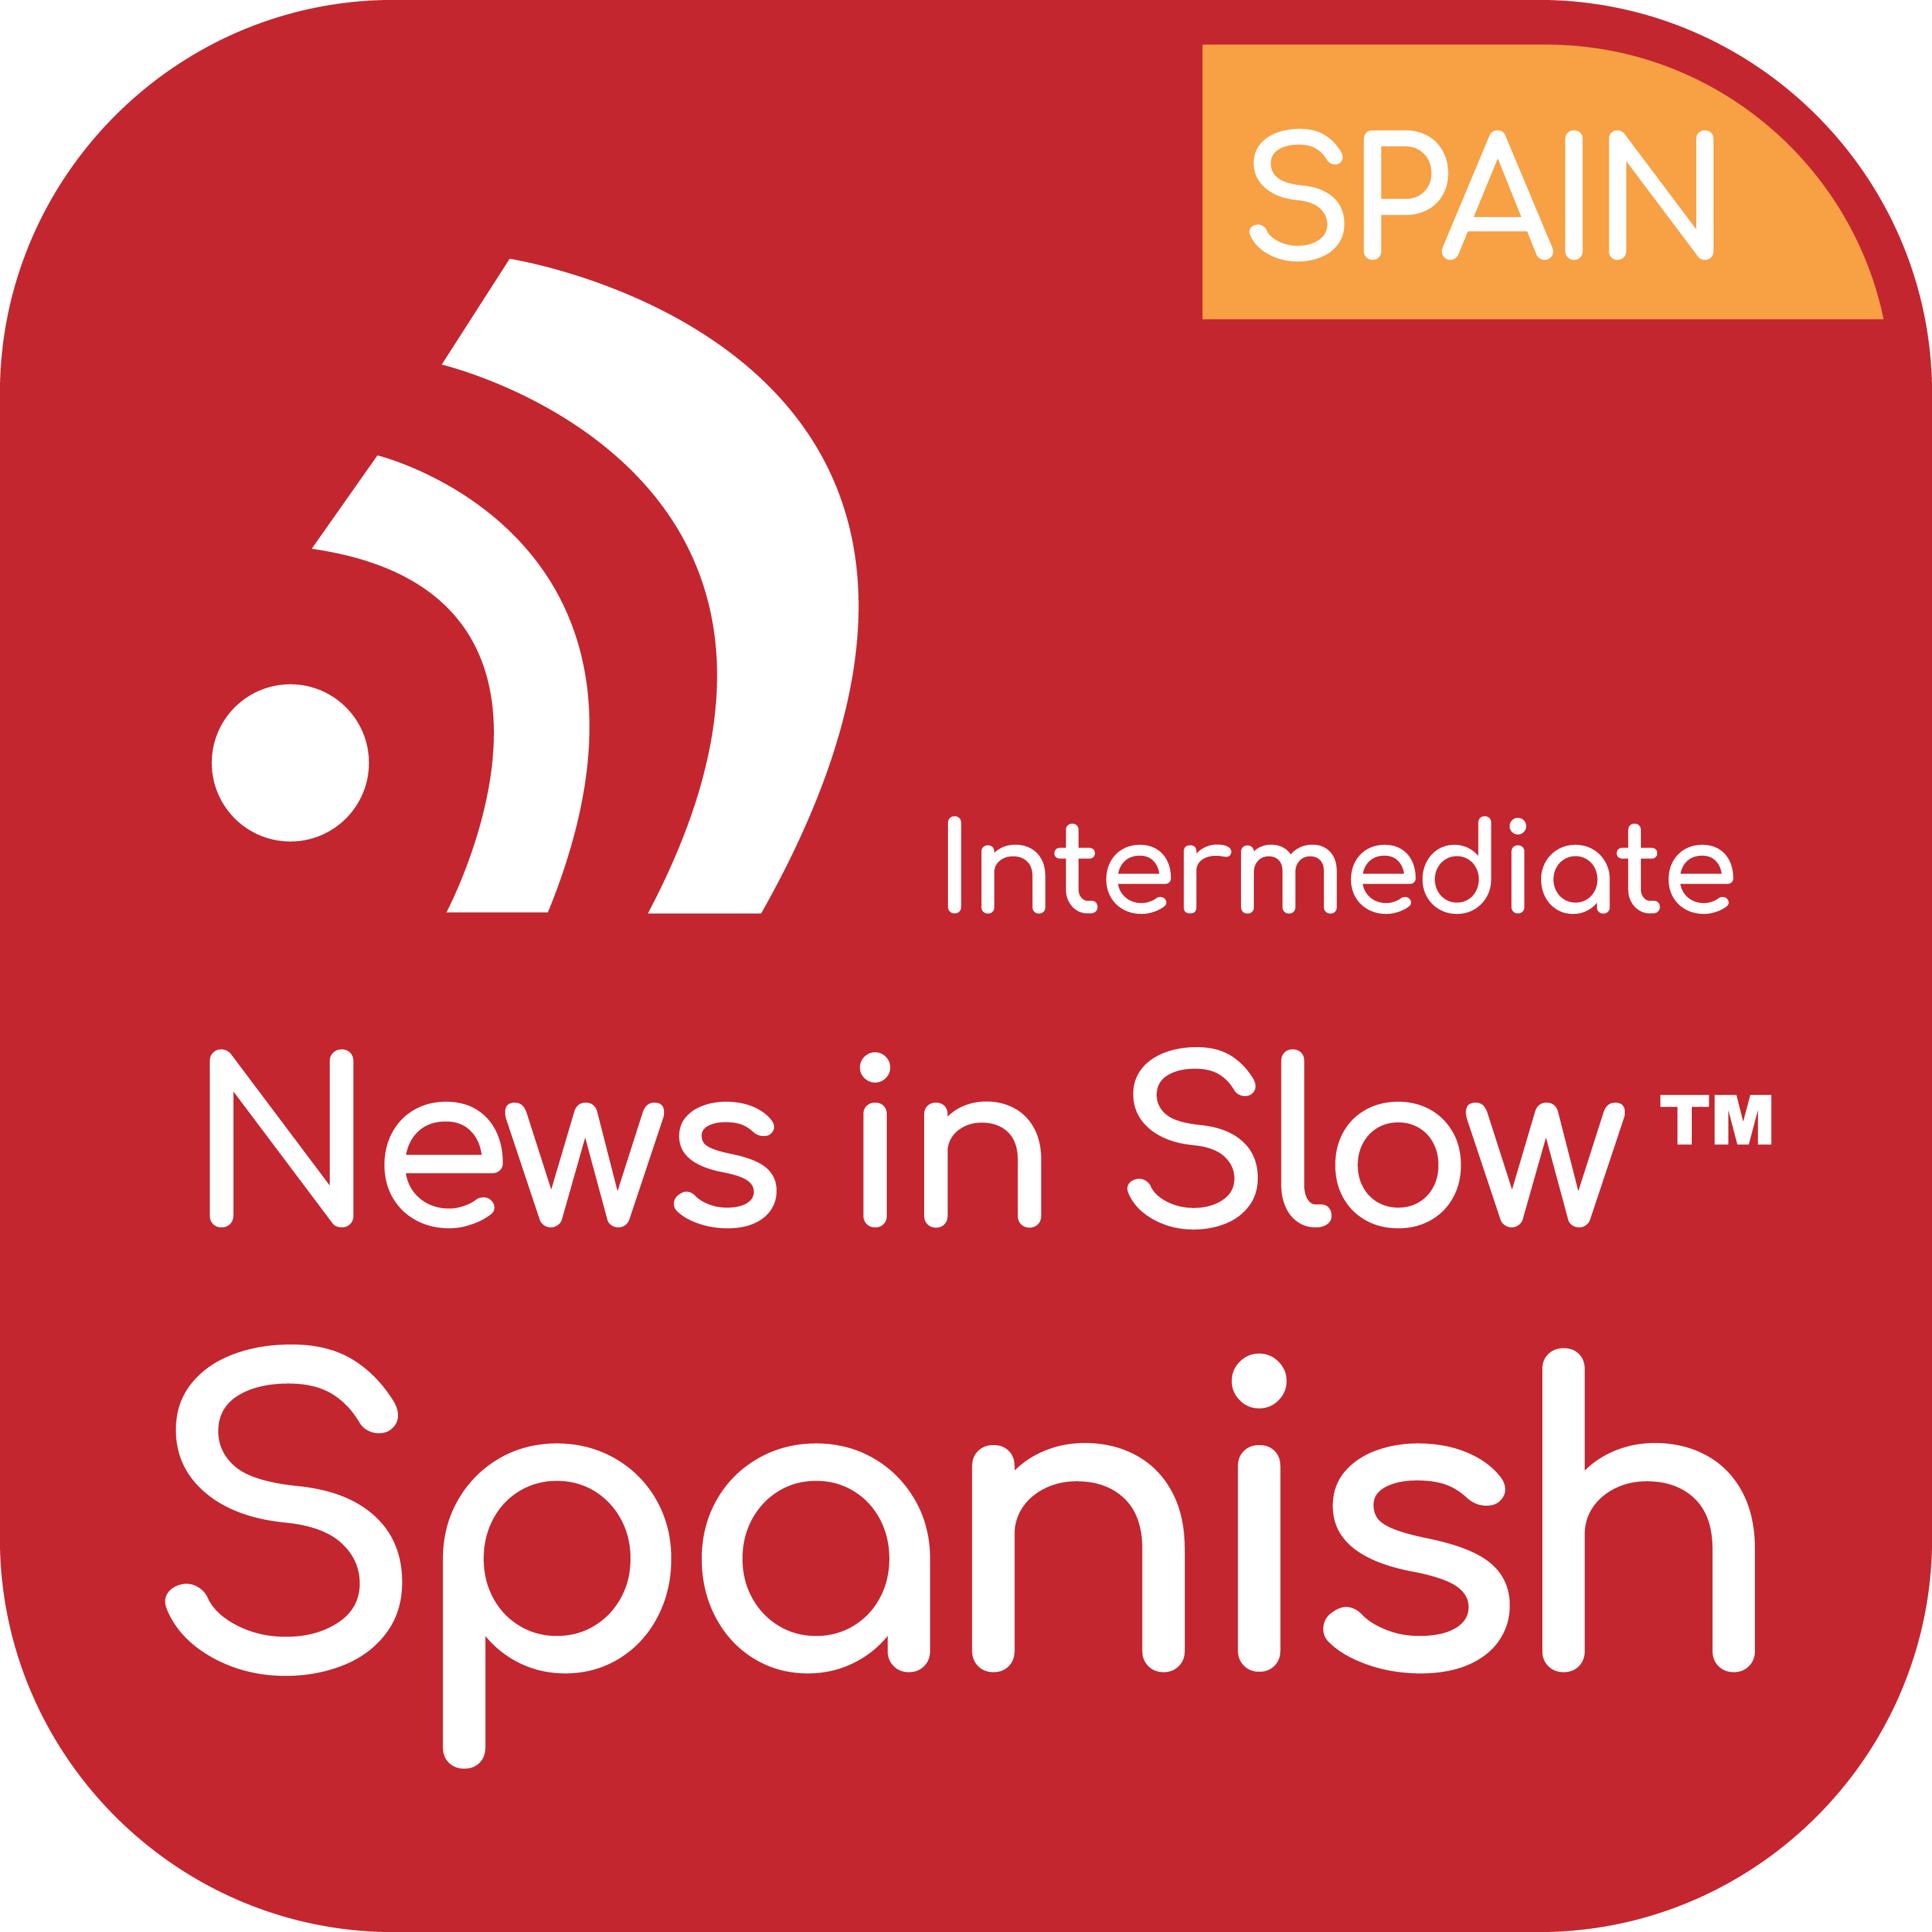 News in Slow Spanish - #630 - Easy Spanish Conversation about Current Events